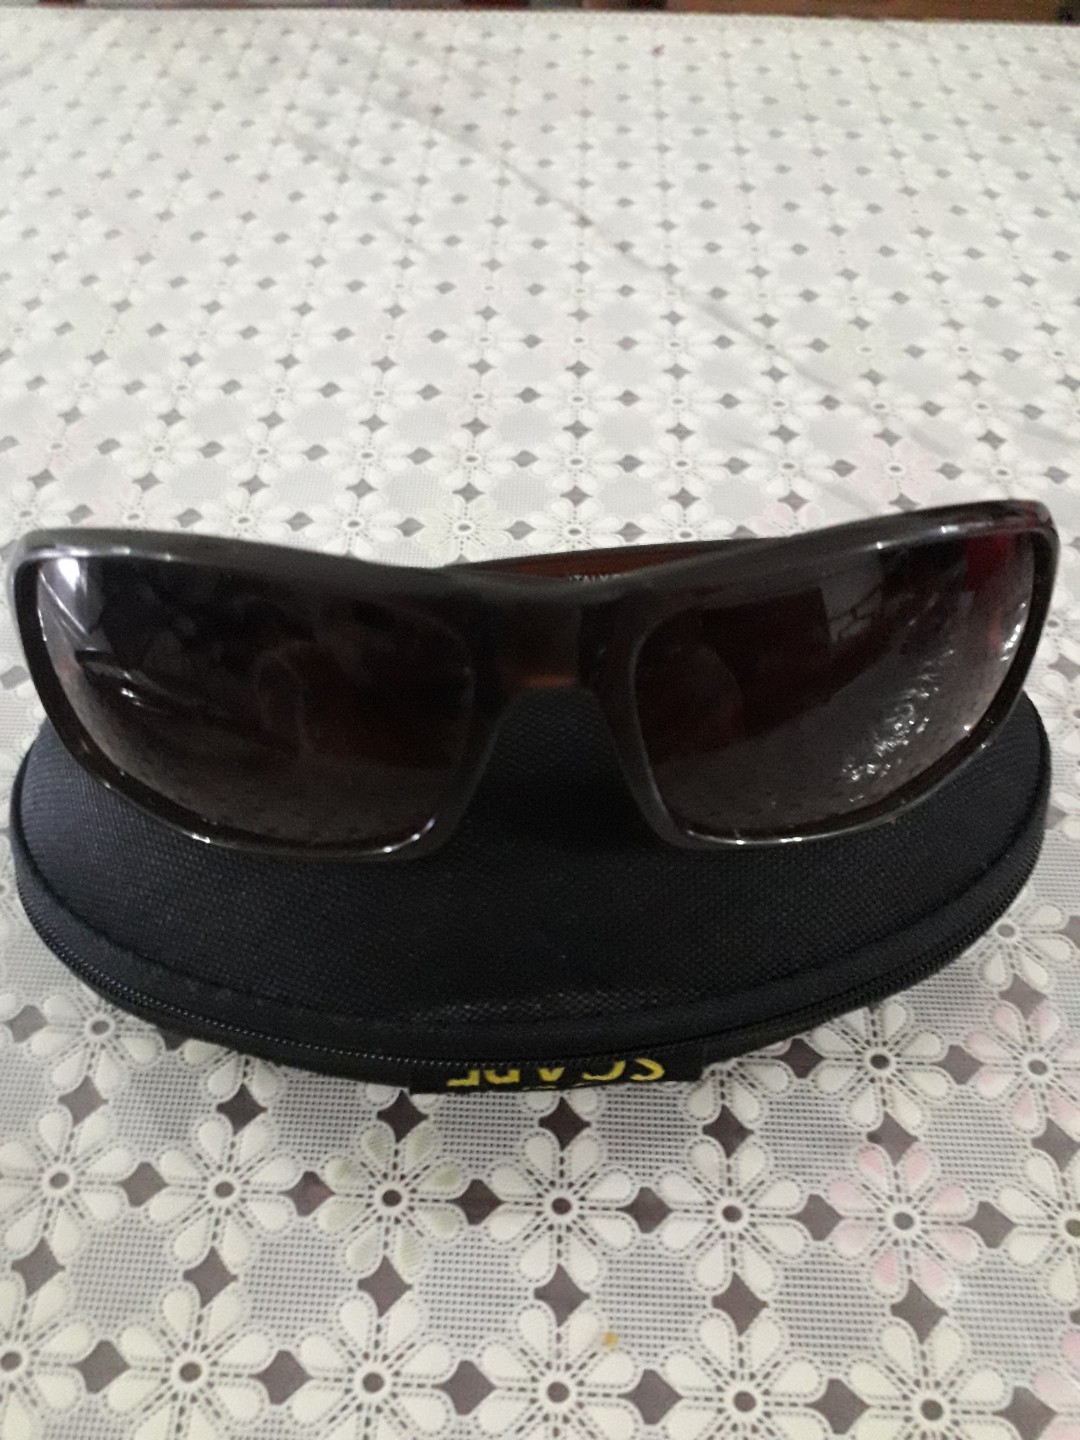 1be0de8506b Home · Men s Fashion · Accessories · Eyewear   Sunglasses. photo photo  photo photo photo